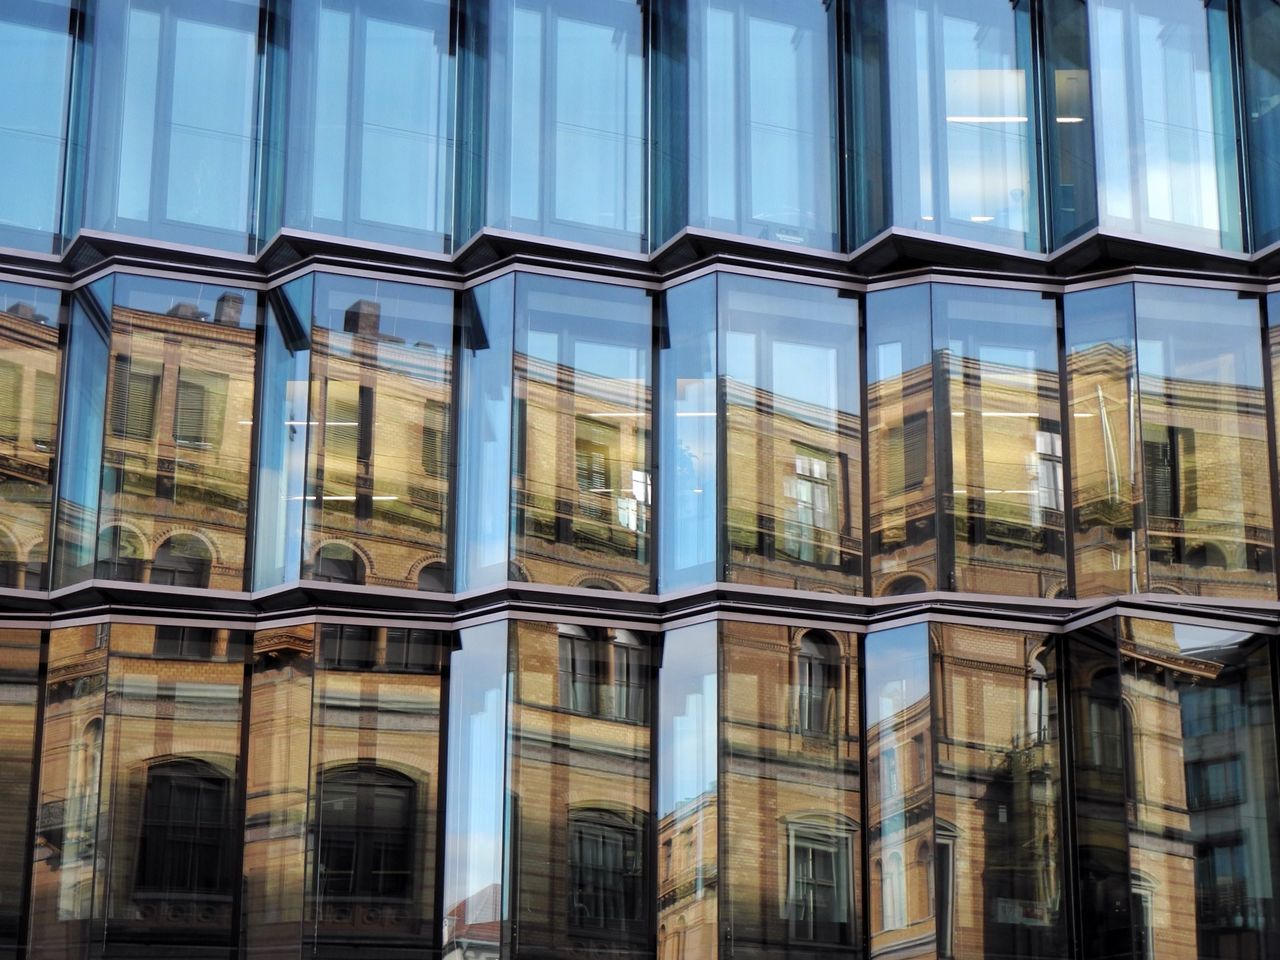 Architecture_collection Berliner Ansichten Architecture Architectural Detail Perspective Eye4photography  Windows Urban Reflections Reflection_collection Light And Shadow Urban Geometry Geometric Shapes Exeptional Photographs